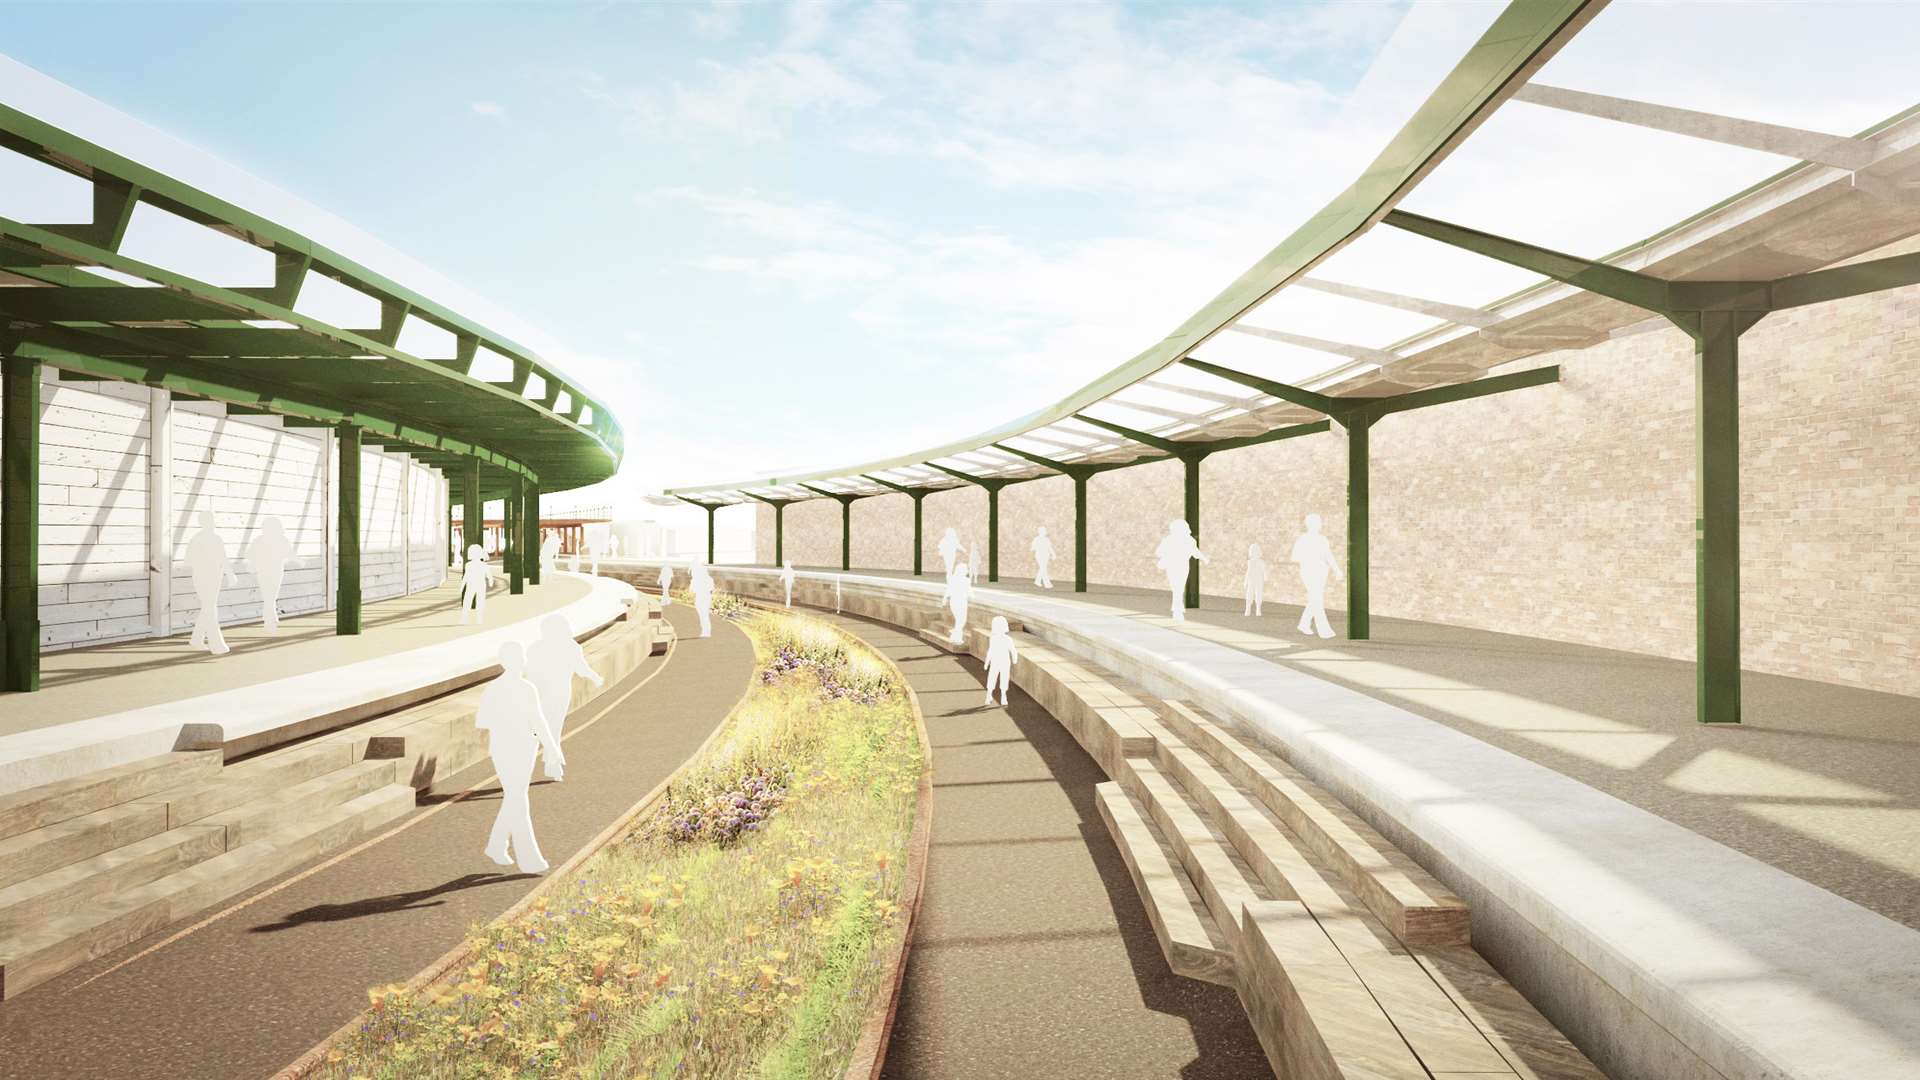 New plans revealed for the restoration of the old Folkestone Harbour Station. Picture: Folkestone Harbour Arm